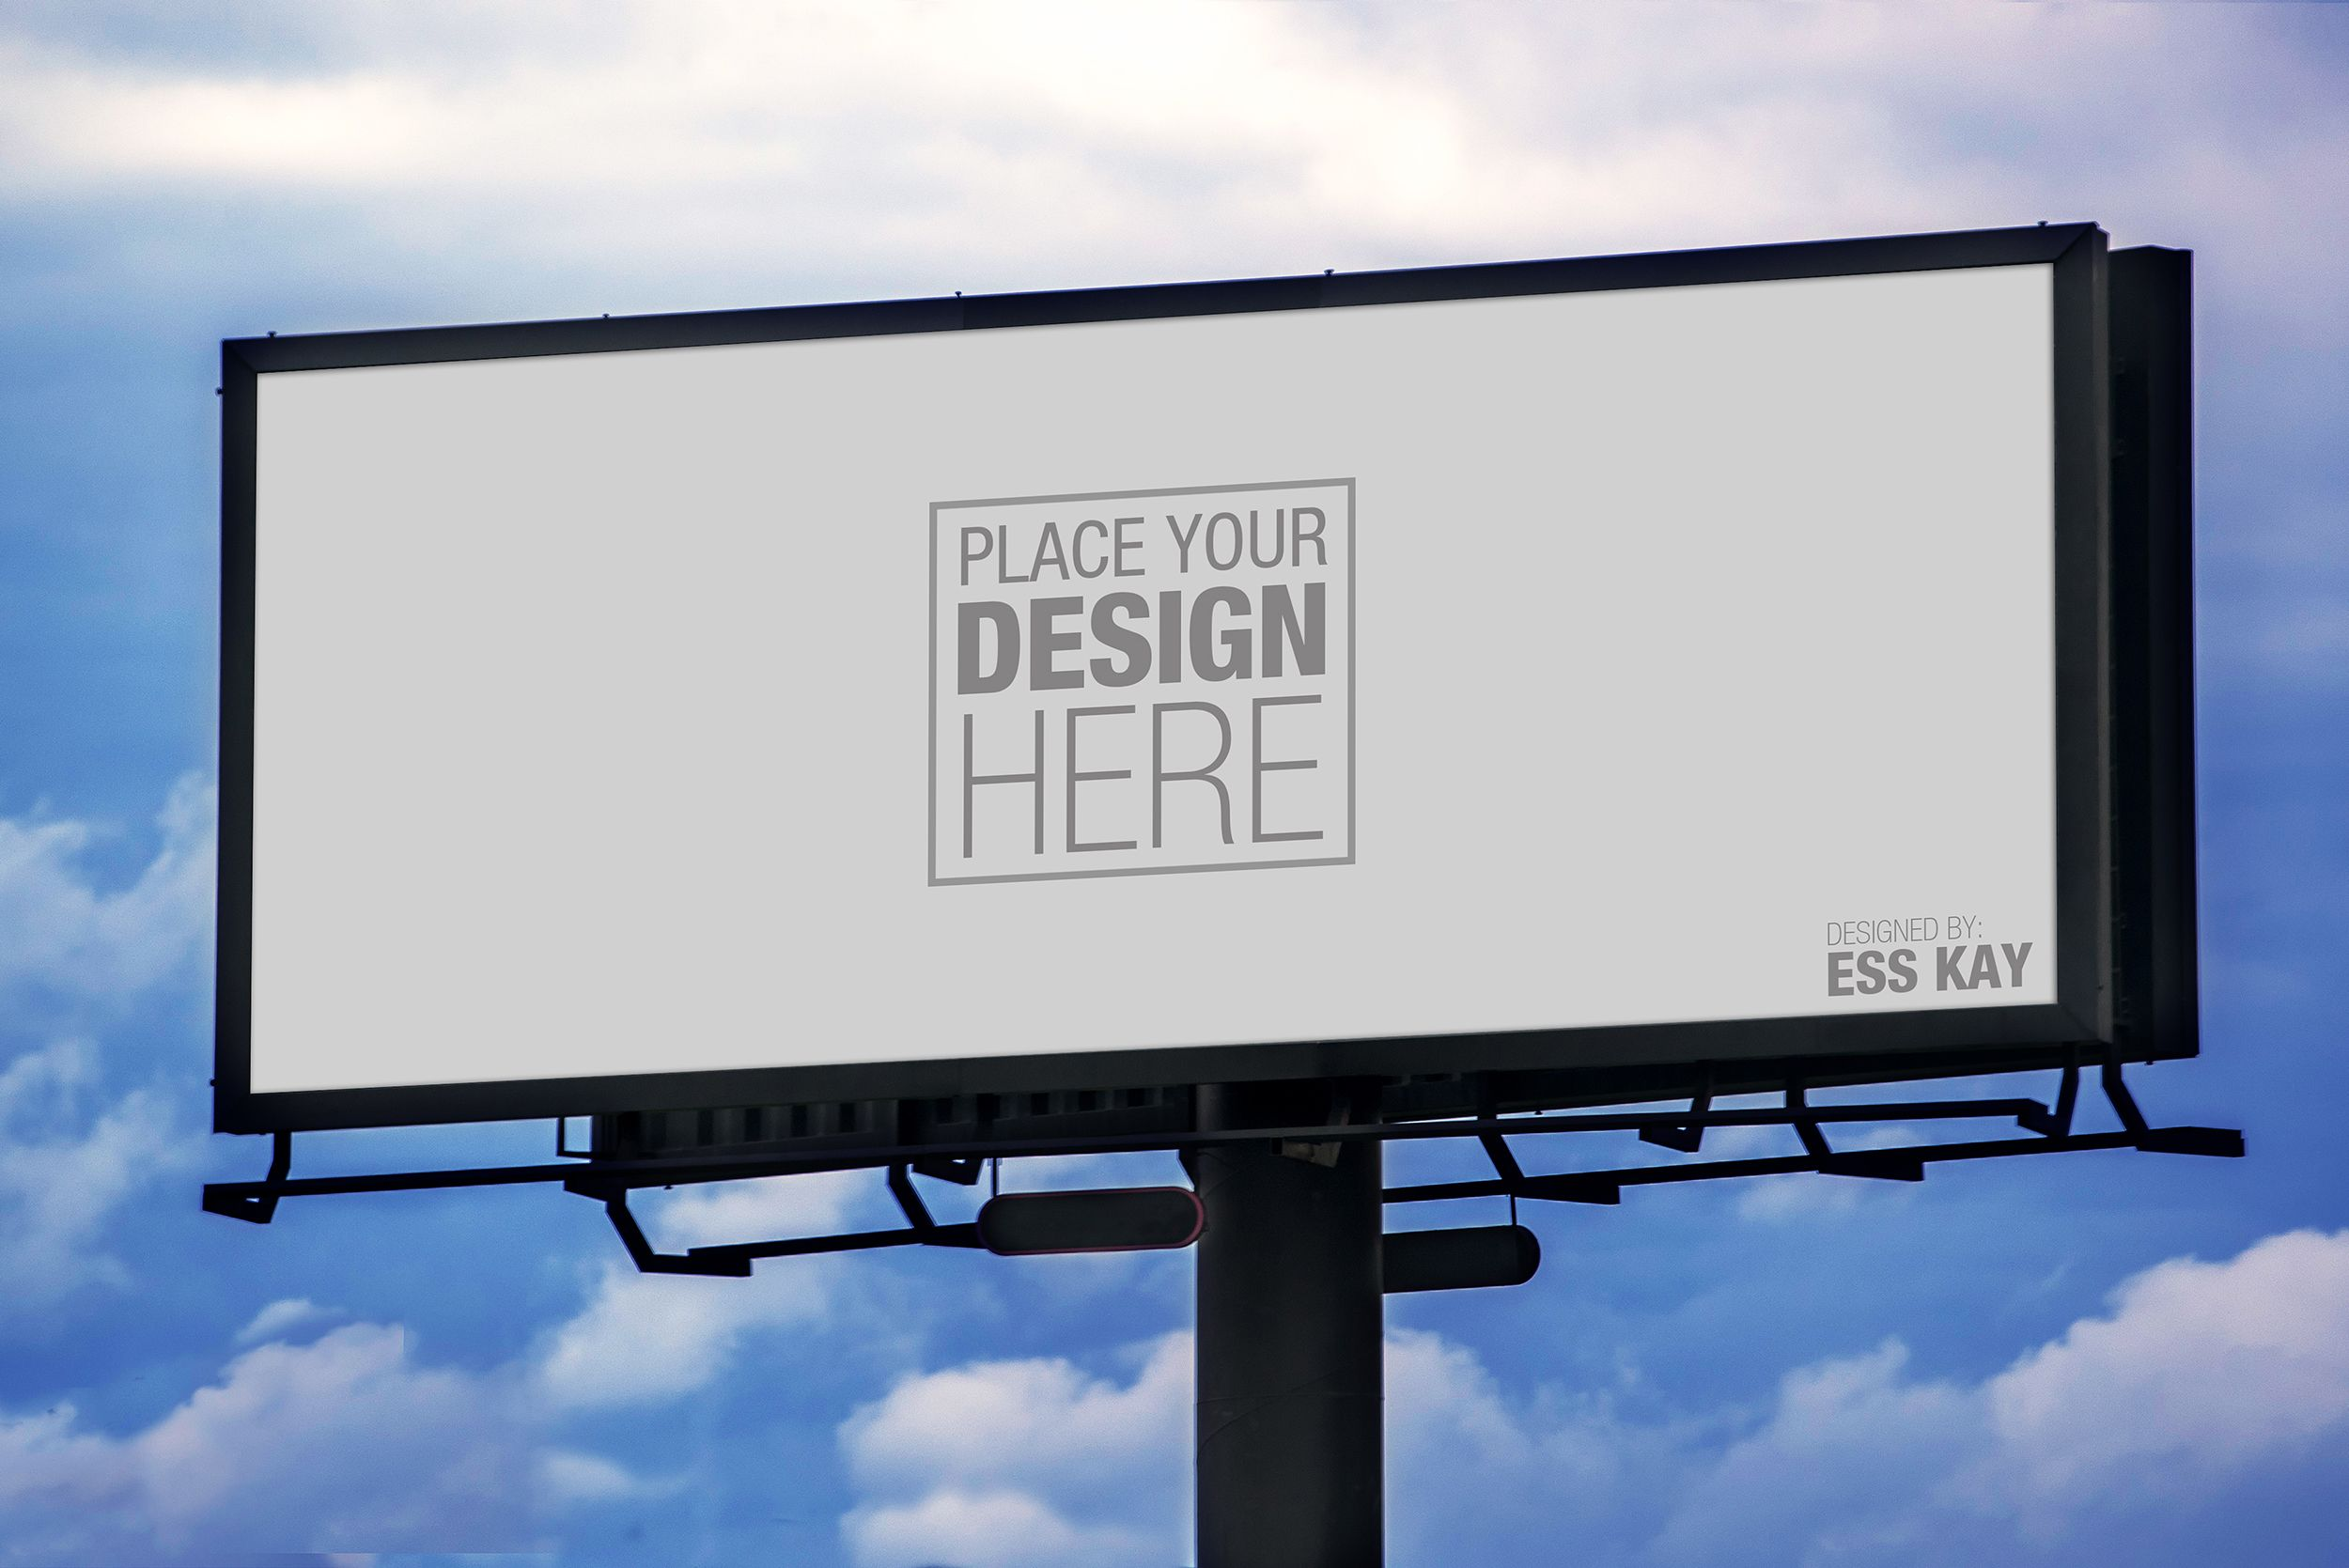 Billboard mockup clipart picture royalty free library 4 Free Outdoor Advertisement Hoarding-Billboard Mockup PSD Files ... picture royalty free library